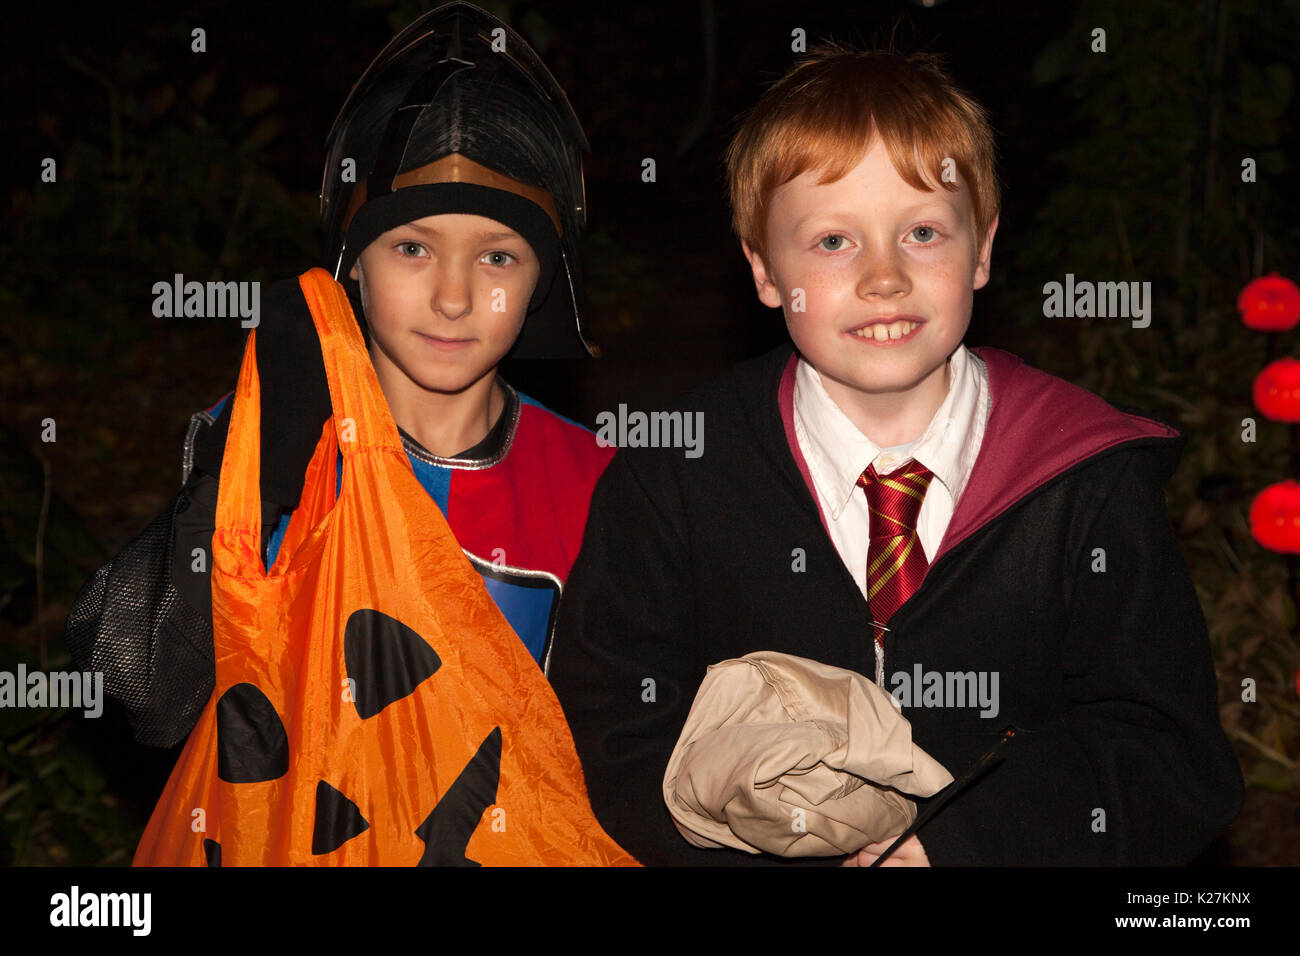 Halloween costumed characters right out of a Harry Potter adventure trick or treating. St Paul Minnesota MN USA - Stock Image